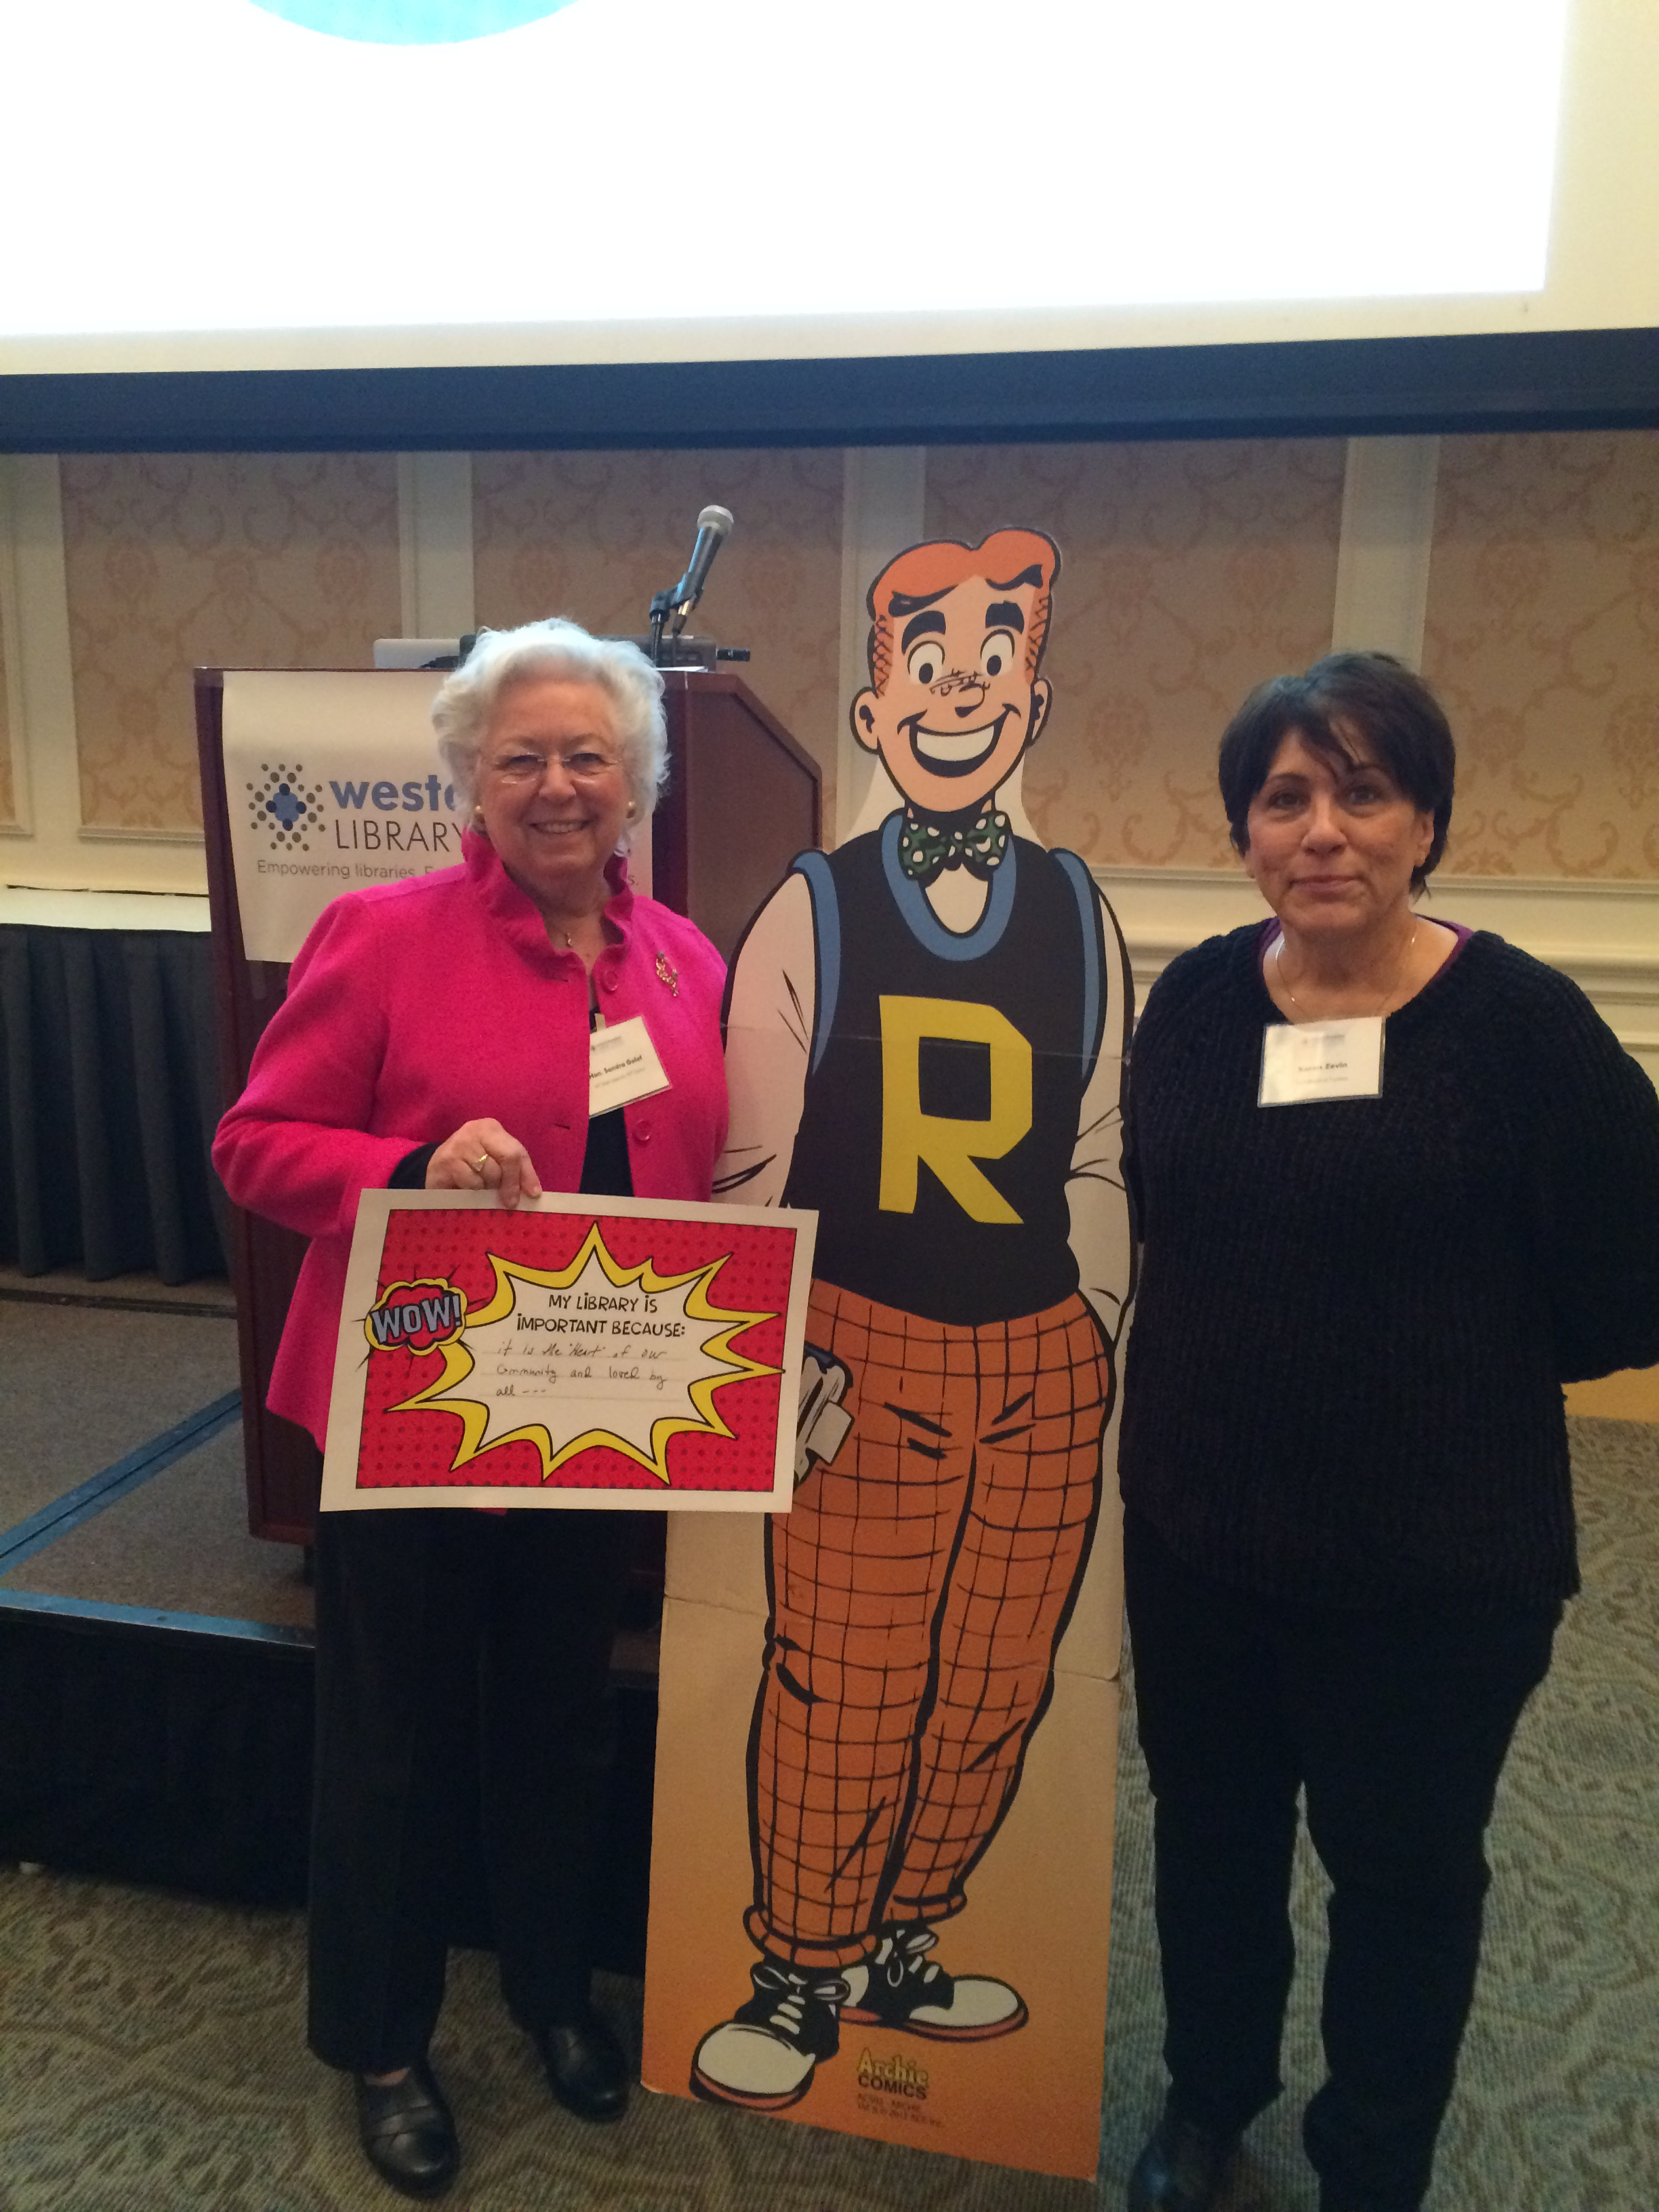 Sandy attended a Westchester Library System event with Croton Resident and Westchester Library Trustee Karen Zevin and a cutout of Archie from the classic comic strip.